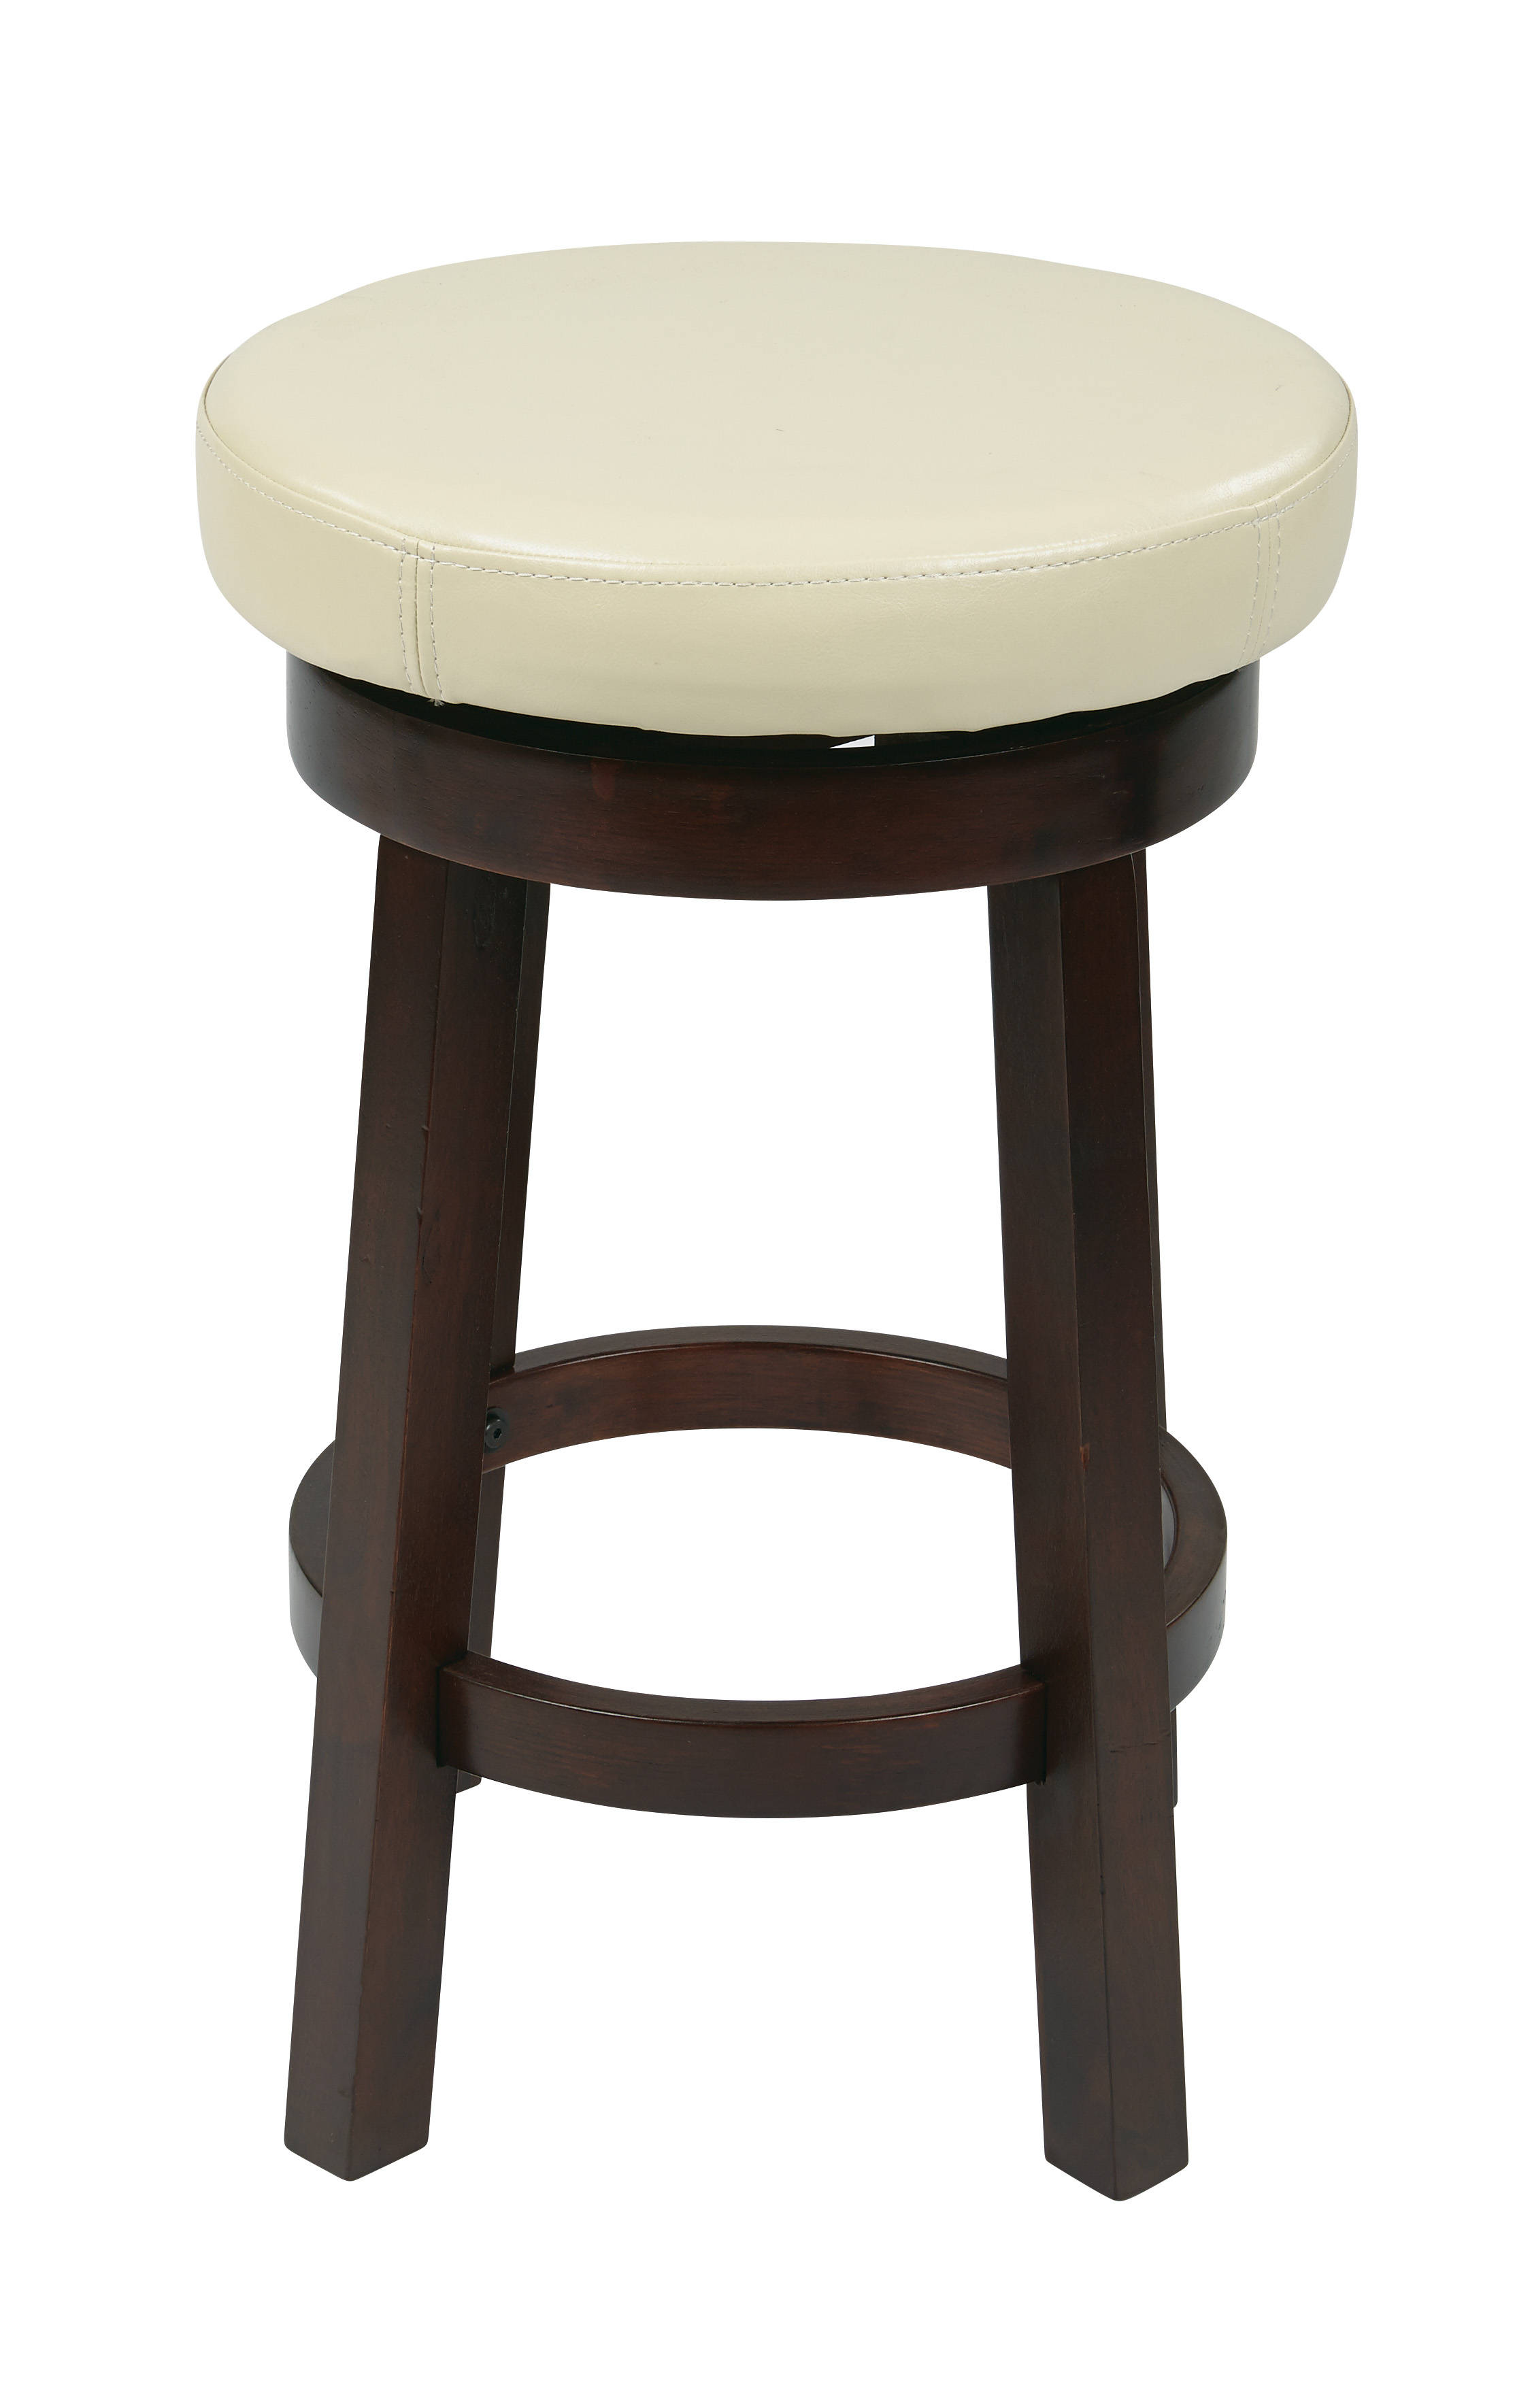 Metro Cream Espresso Faux Leather Wood 24 Inch Round Barstool : Kitchen, Dining u0026 Bars : The ...